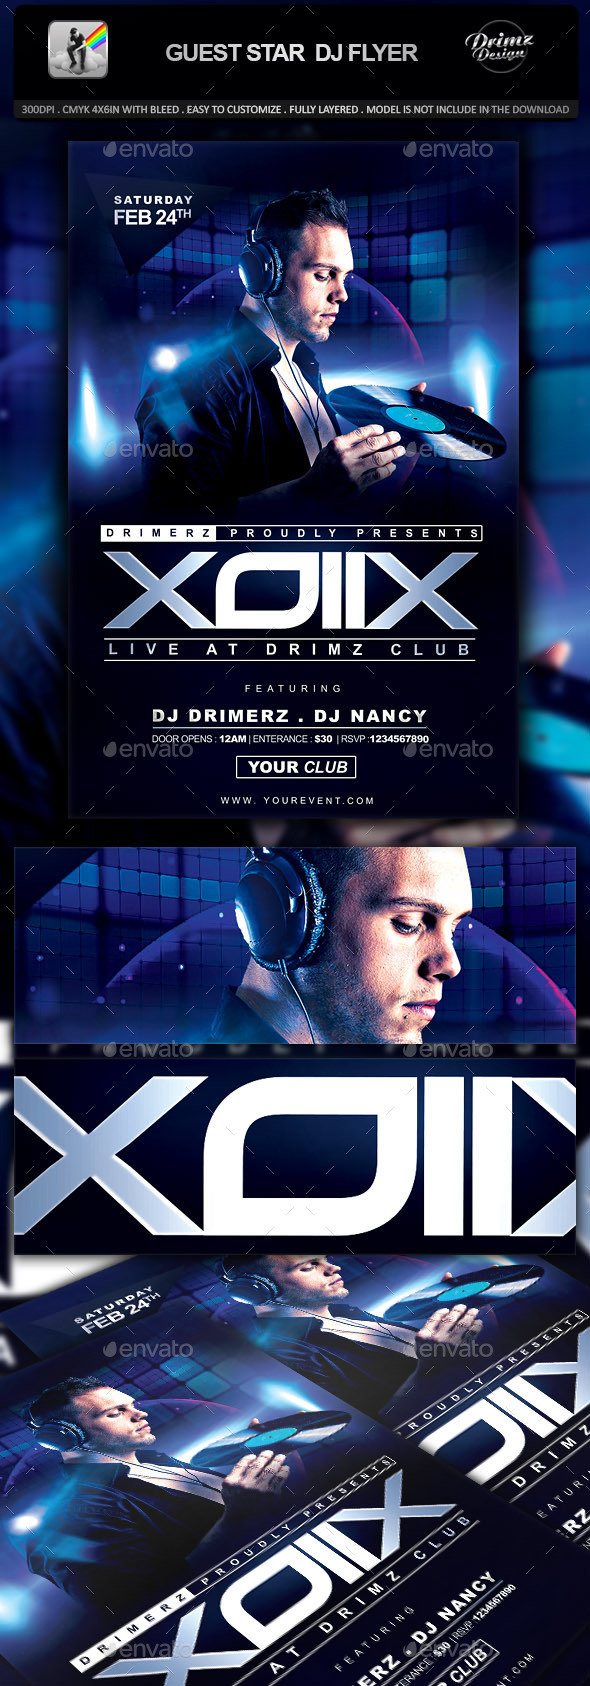 Guest Star DJ Flyer - Events Flyers